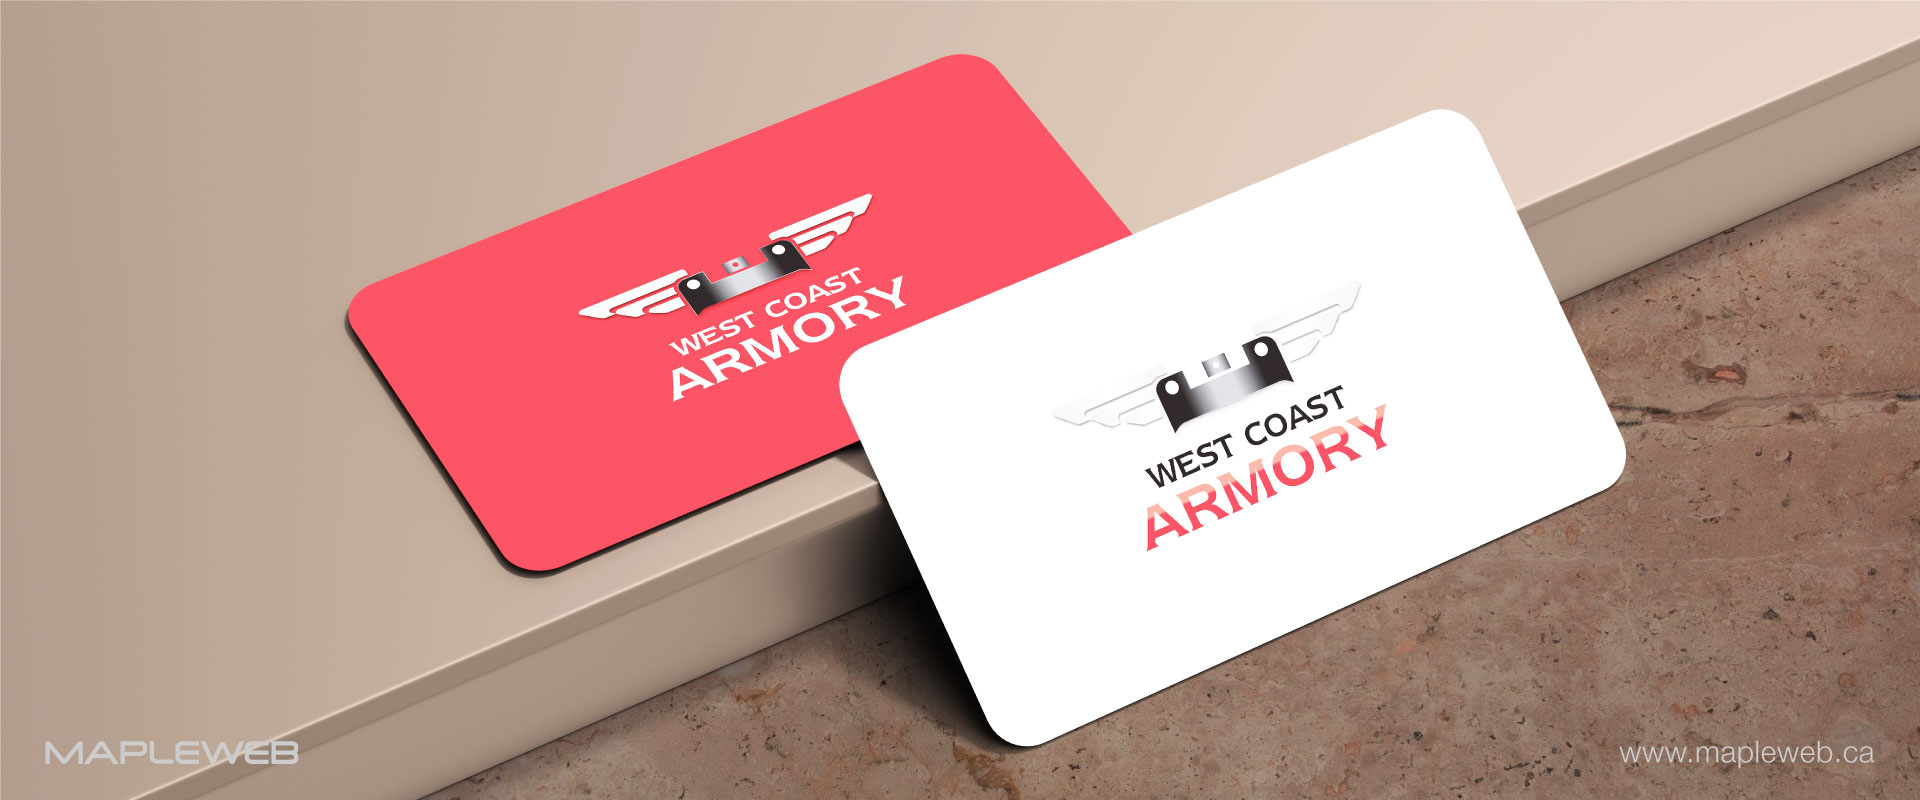 west-coast-armory-brand-logo-design-by-mapleweb-vancouver-canada-business-card-mock